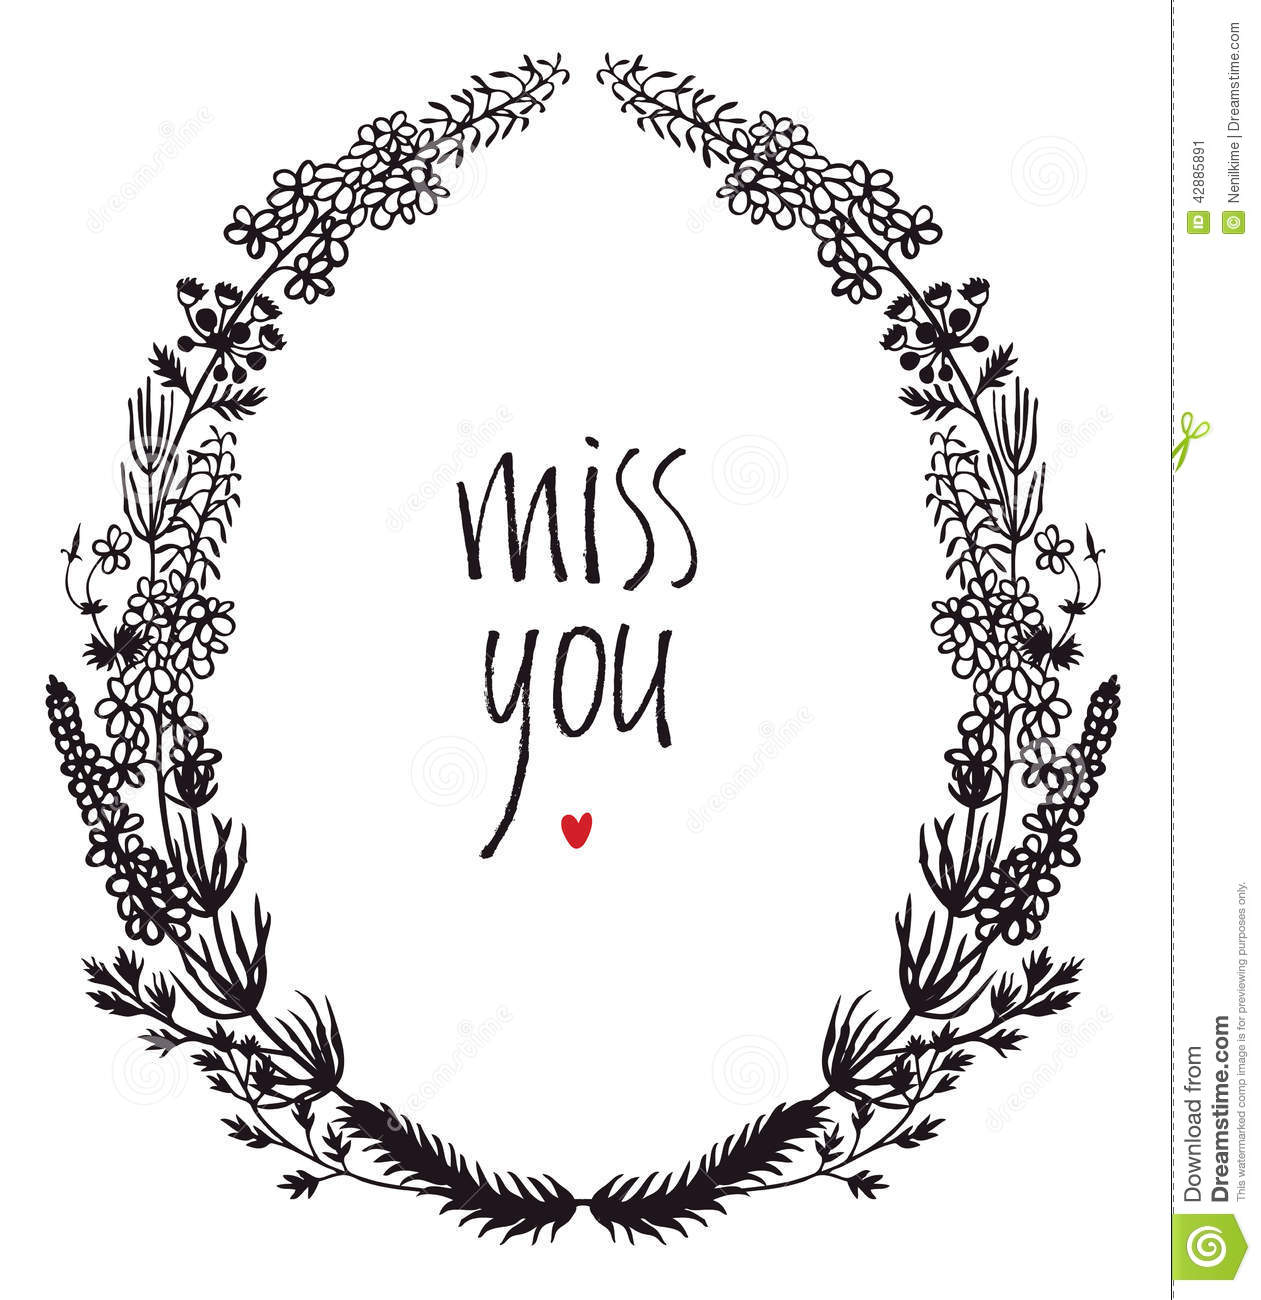 Miss You Design Card With Floral Vignette And Heart Stock Vector ...